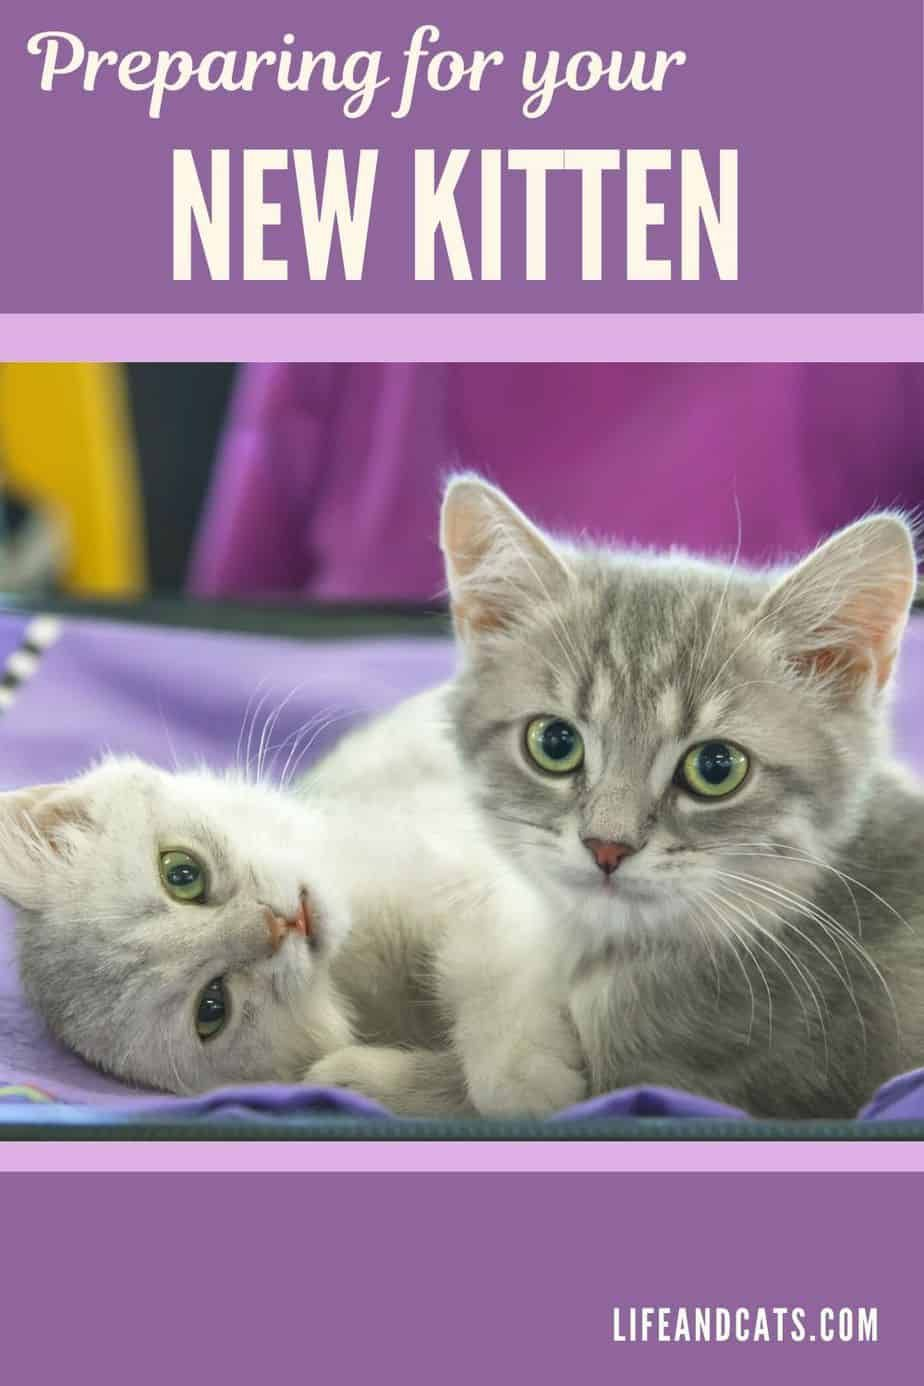 6 Tips For Preparing To Bring Home Your New Kitten Life Cats In 2020 Kitten Kitten Care Cats And Kittens